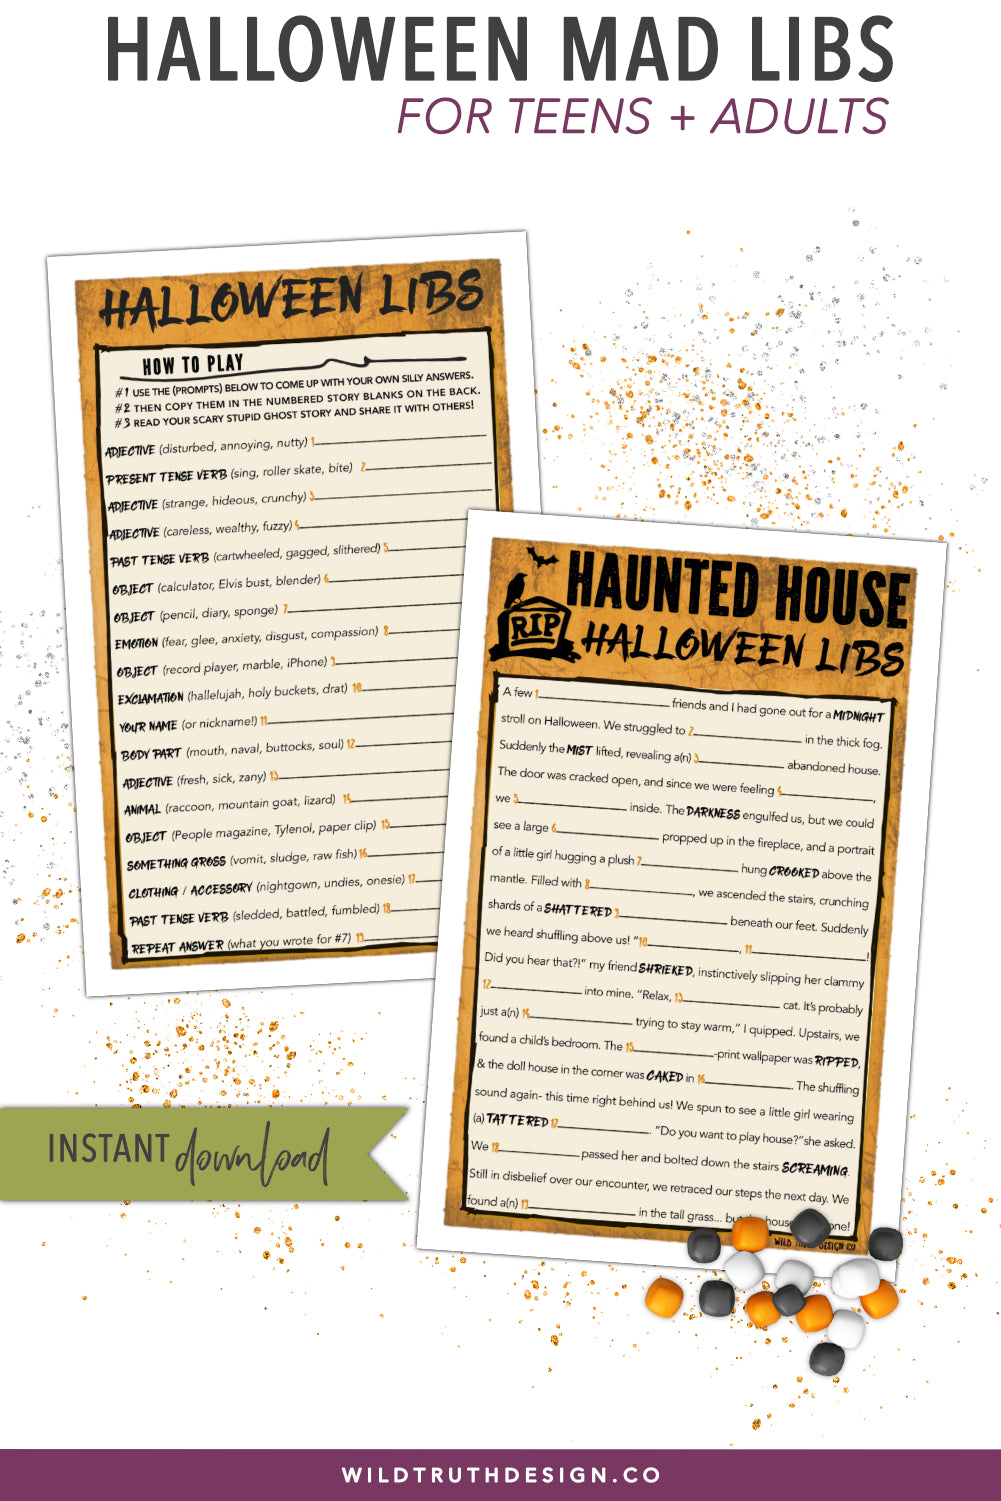 hilarious halloween games for adults - mad libs